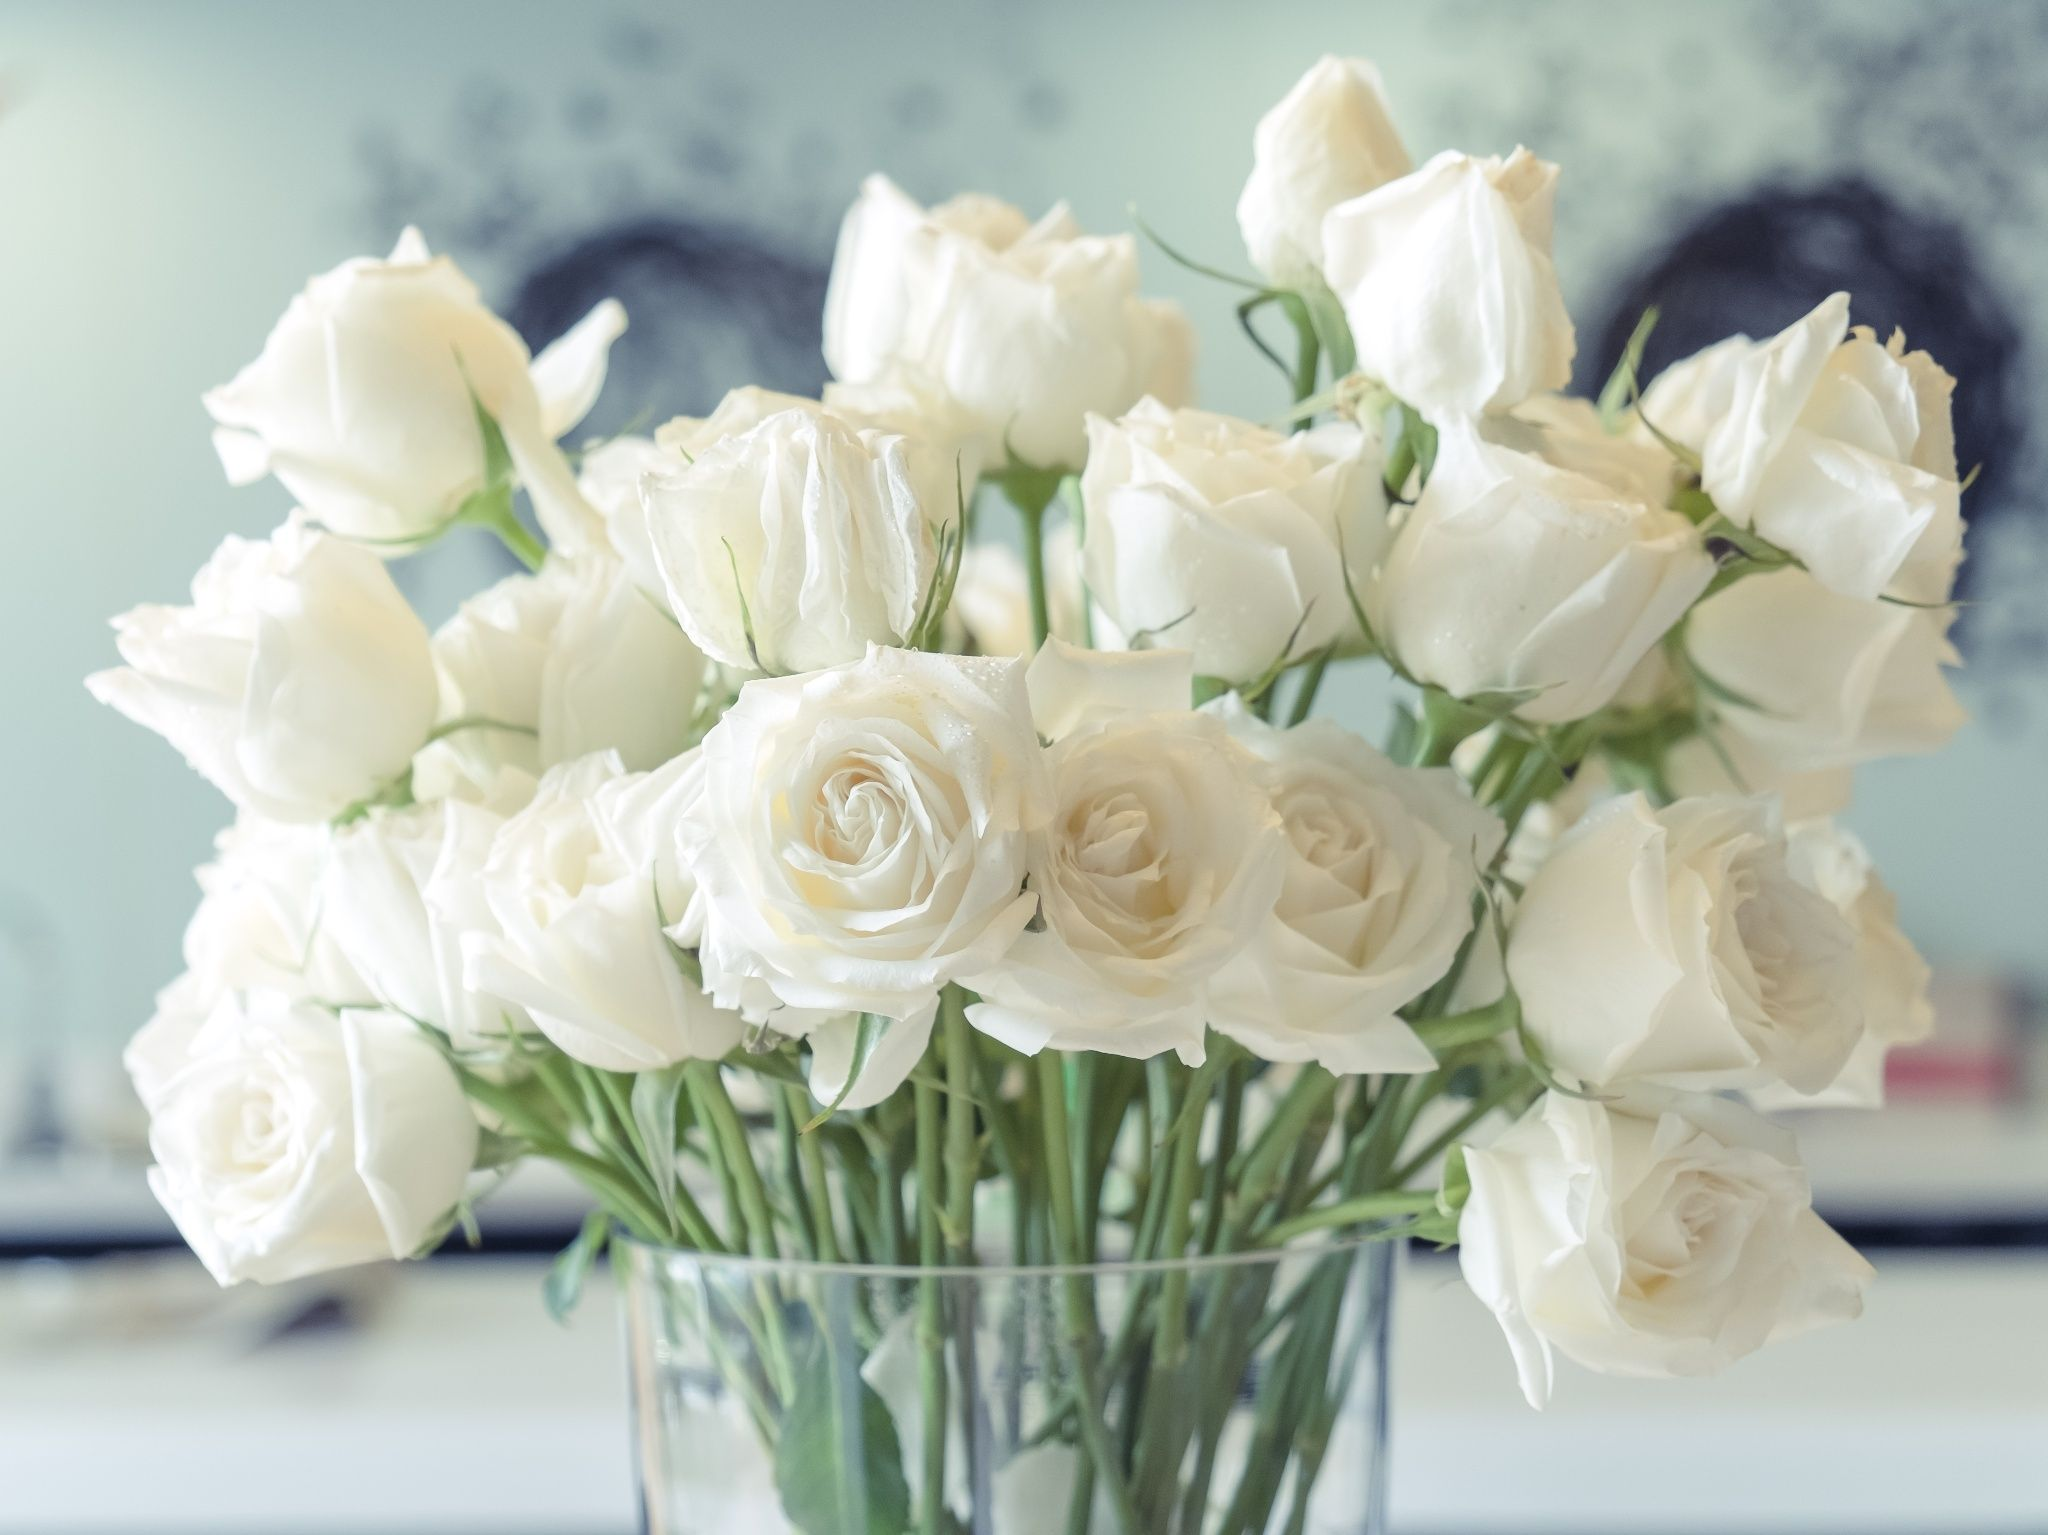 White roses in a glass vase | Weiße rose bedeutung